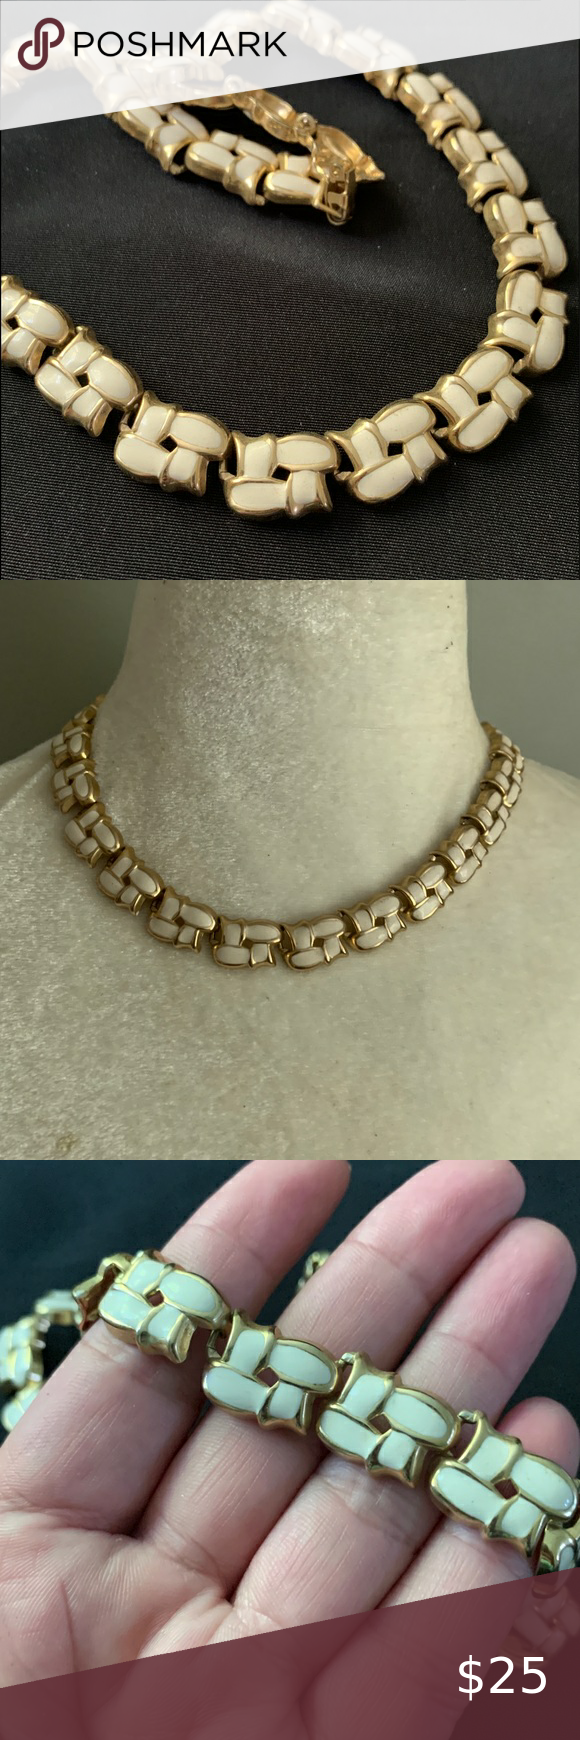 Gold Tone Enamel Braided Woven Collar Necklace Collar Necklace Womens Jewelry Necklace Gold Tones